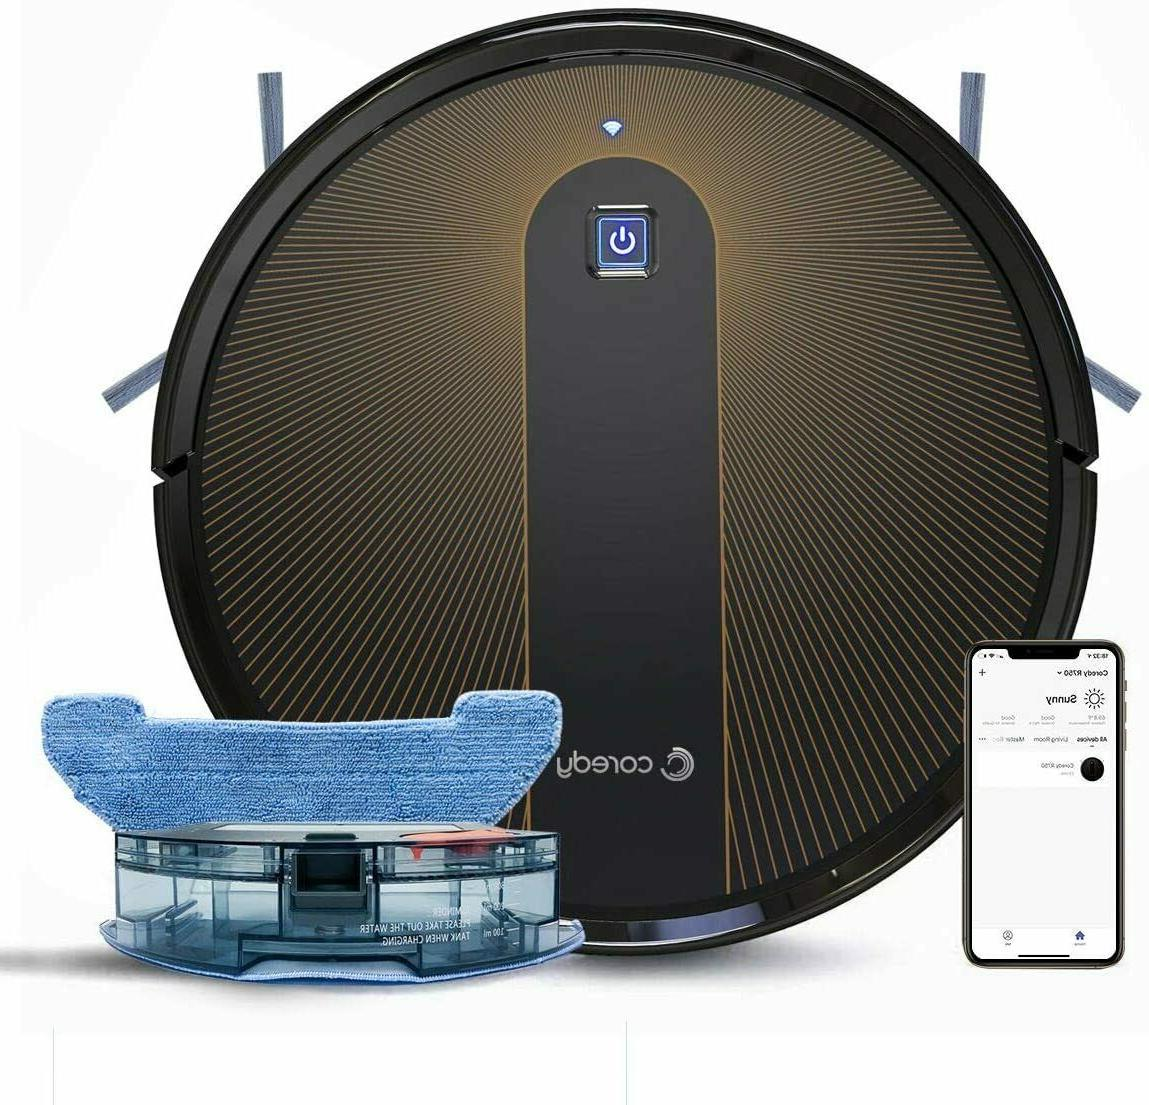 r750 robot vacuum cleaner compatible with alexa